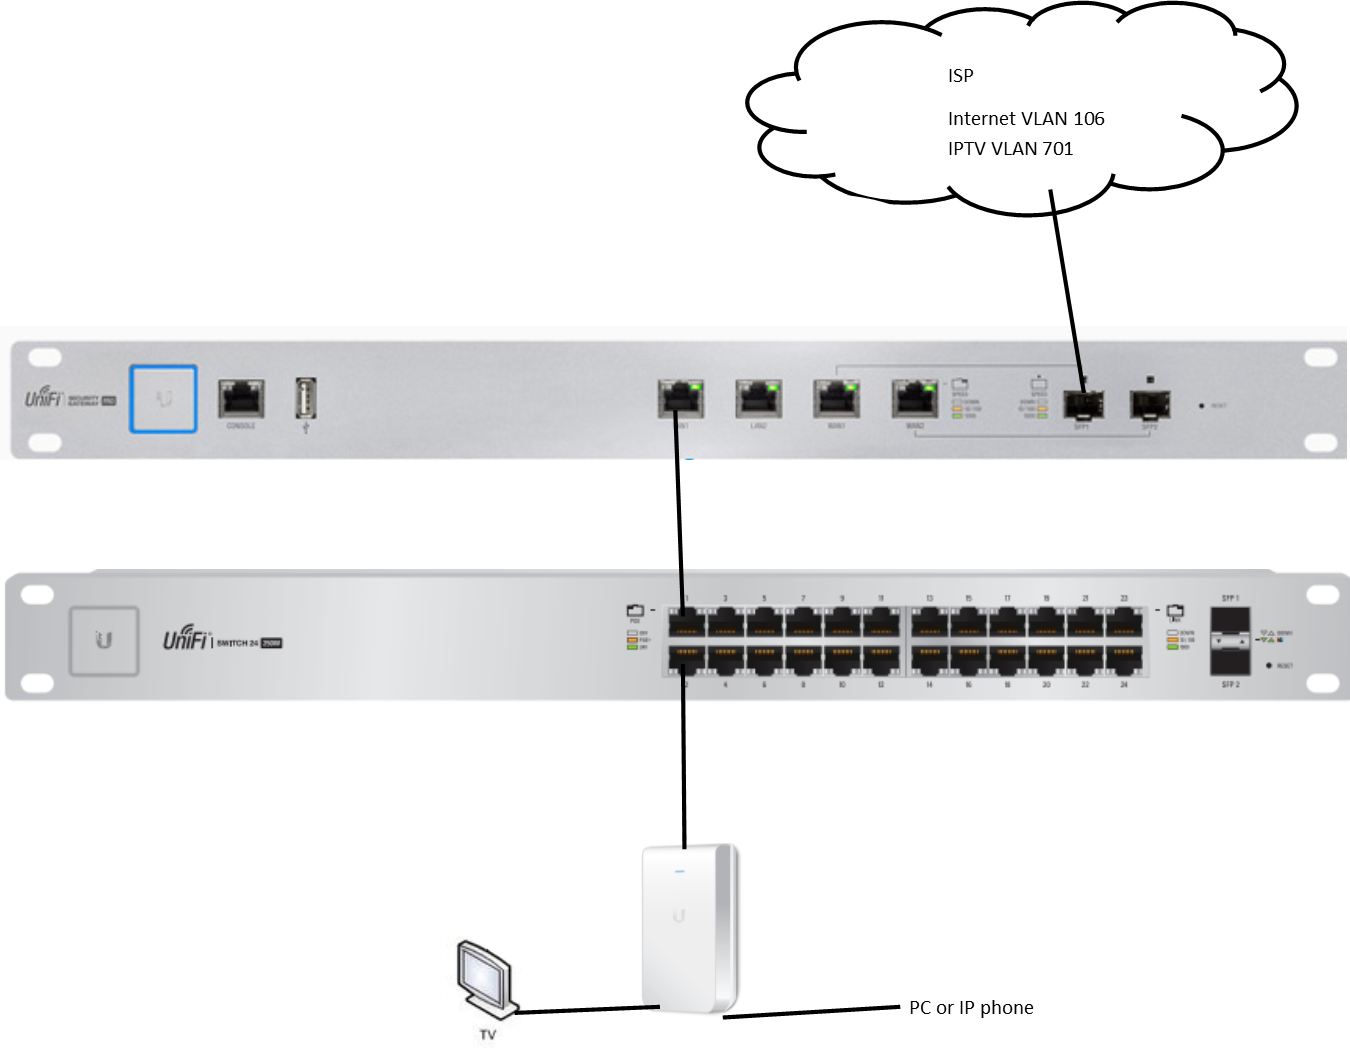 2 VLANs on WAN - Internet and IPTV - USG PRO | Ubiquiti